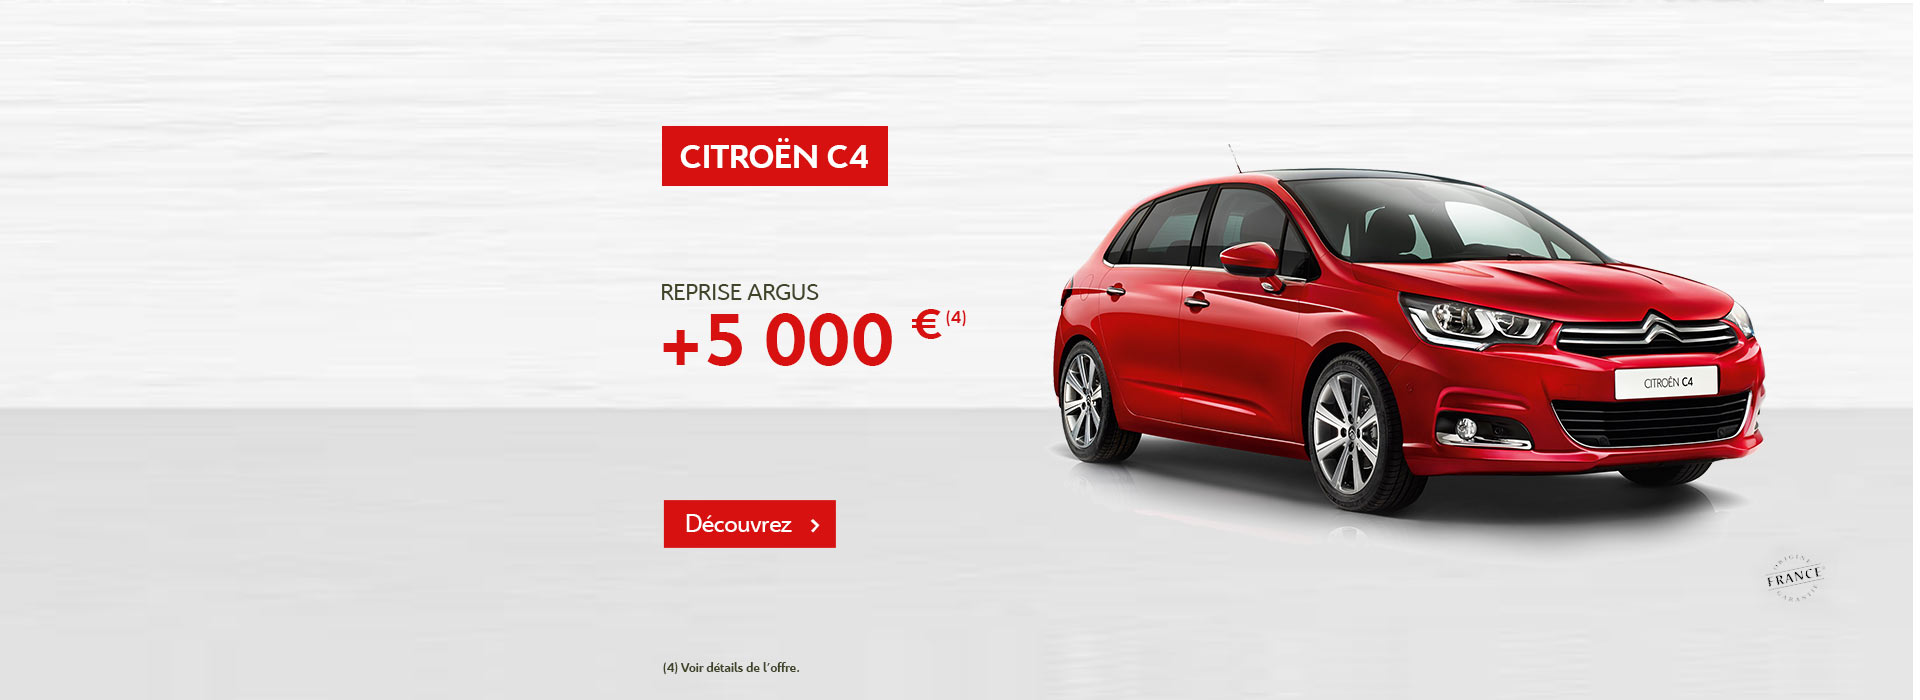 citroen reprise argus estimation reprise promotions argus